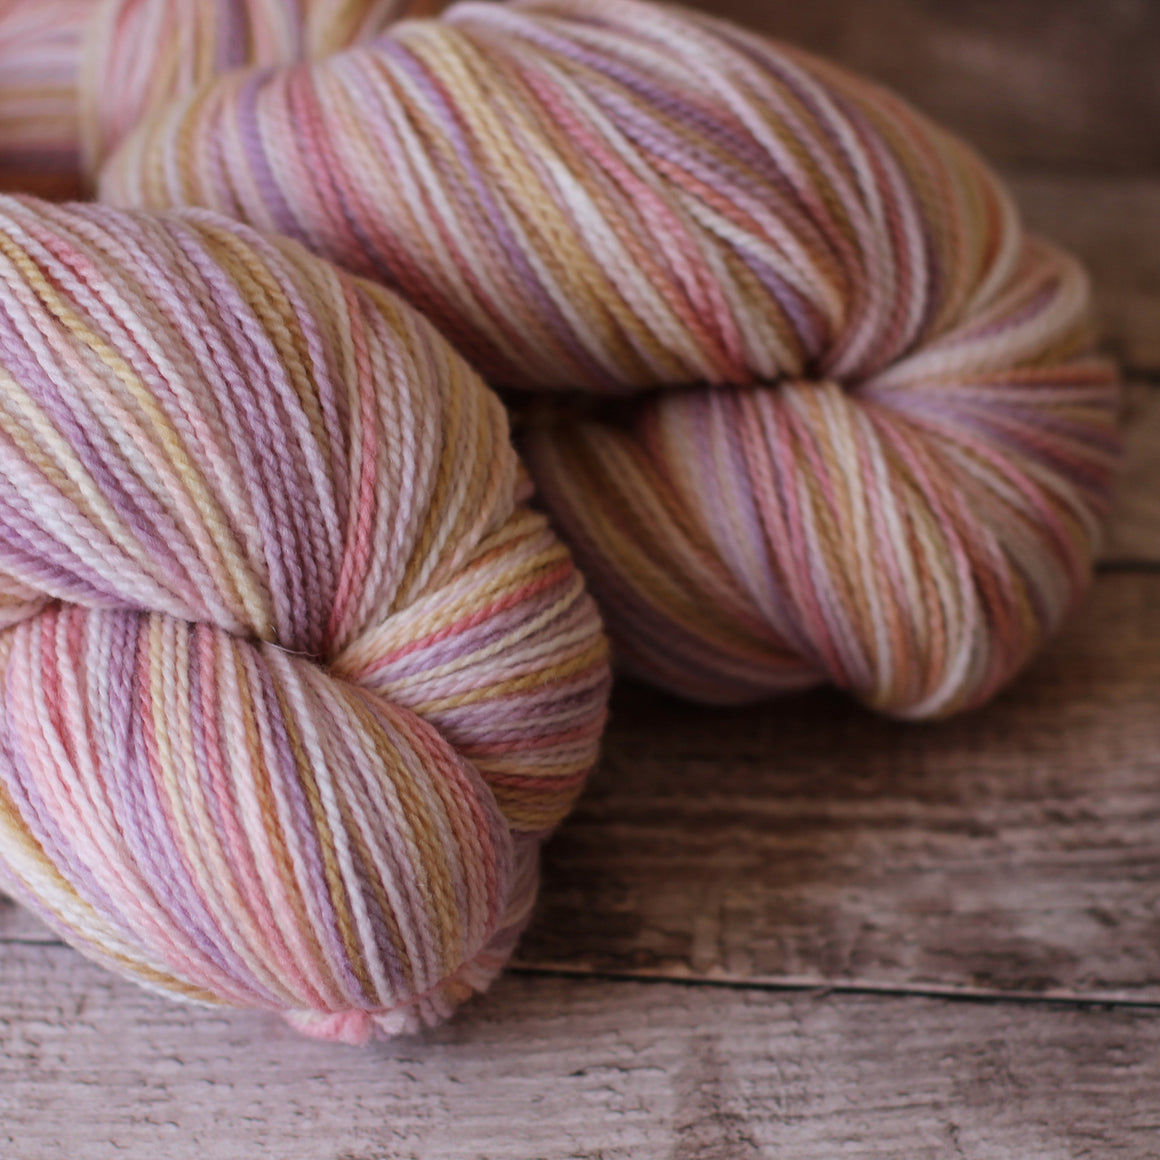 White Gum Wool 4ply Yarn - Casper